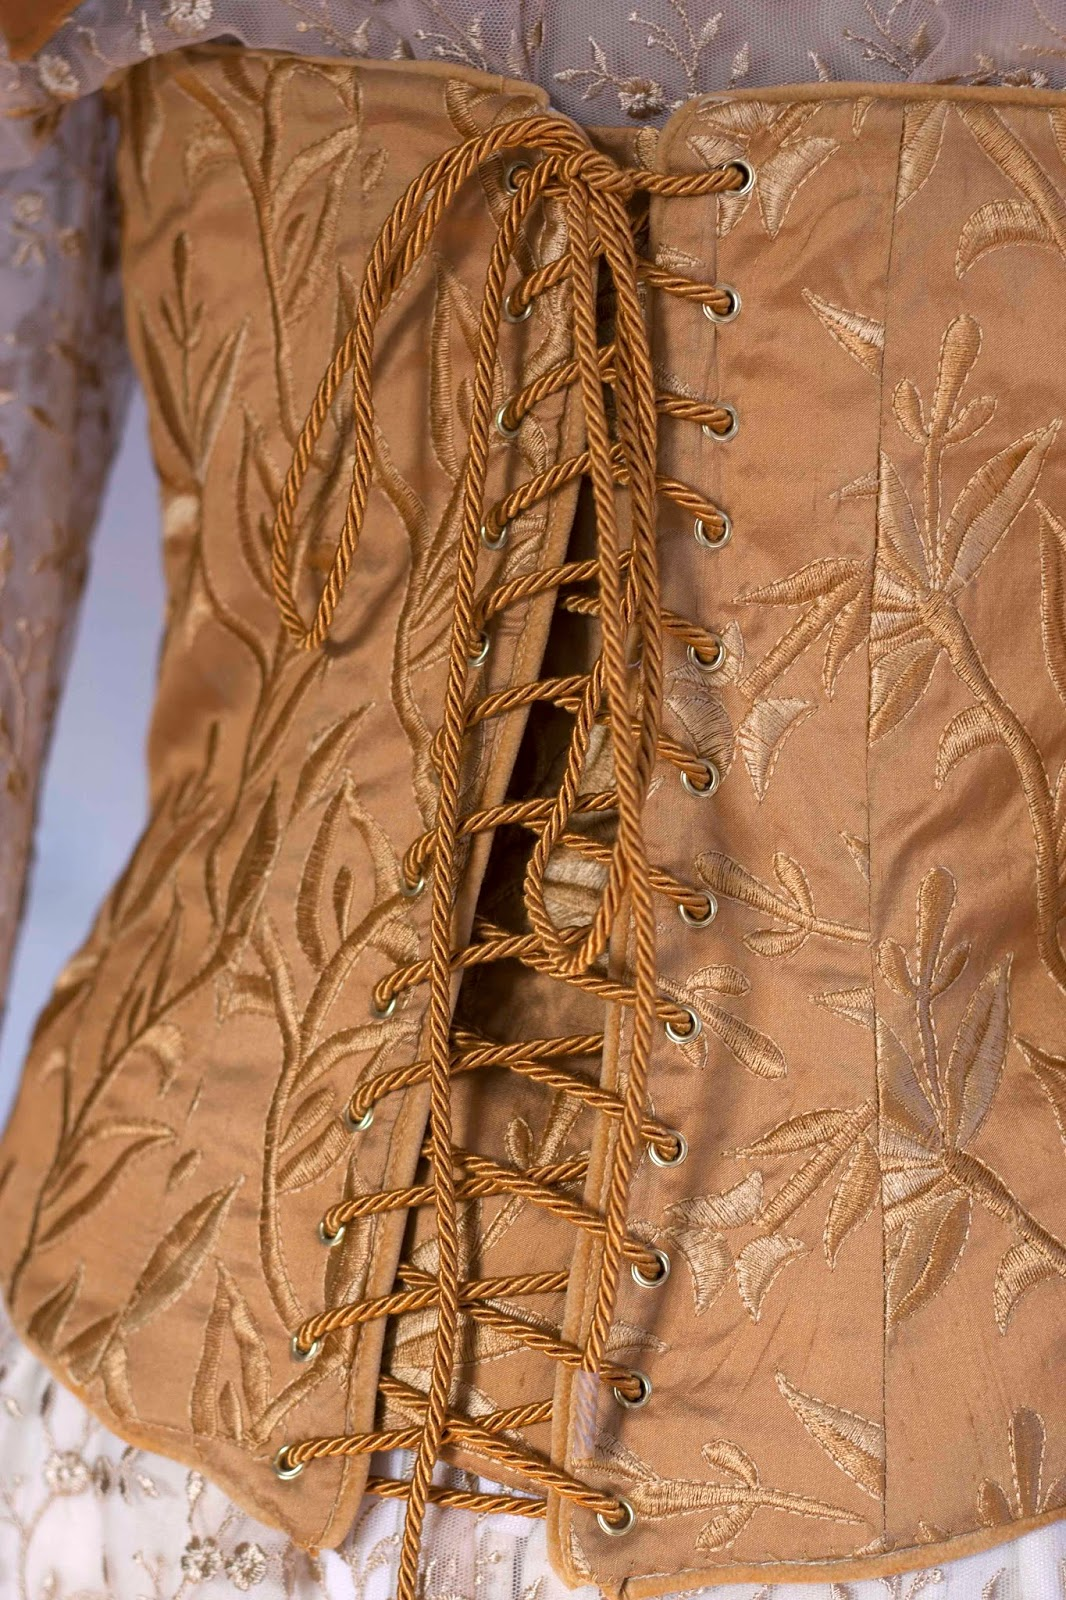 back view of corset with laces